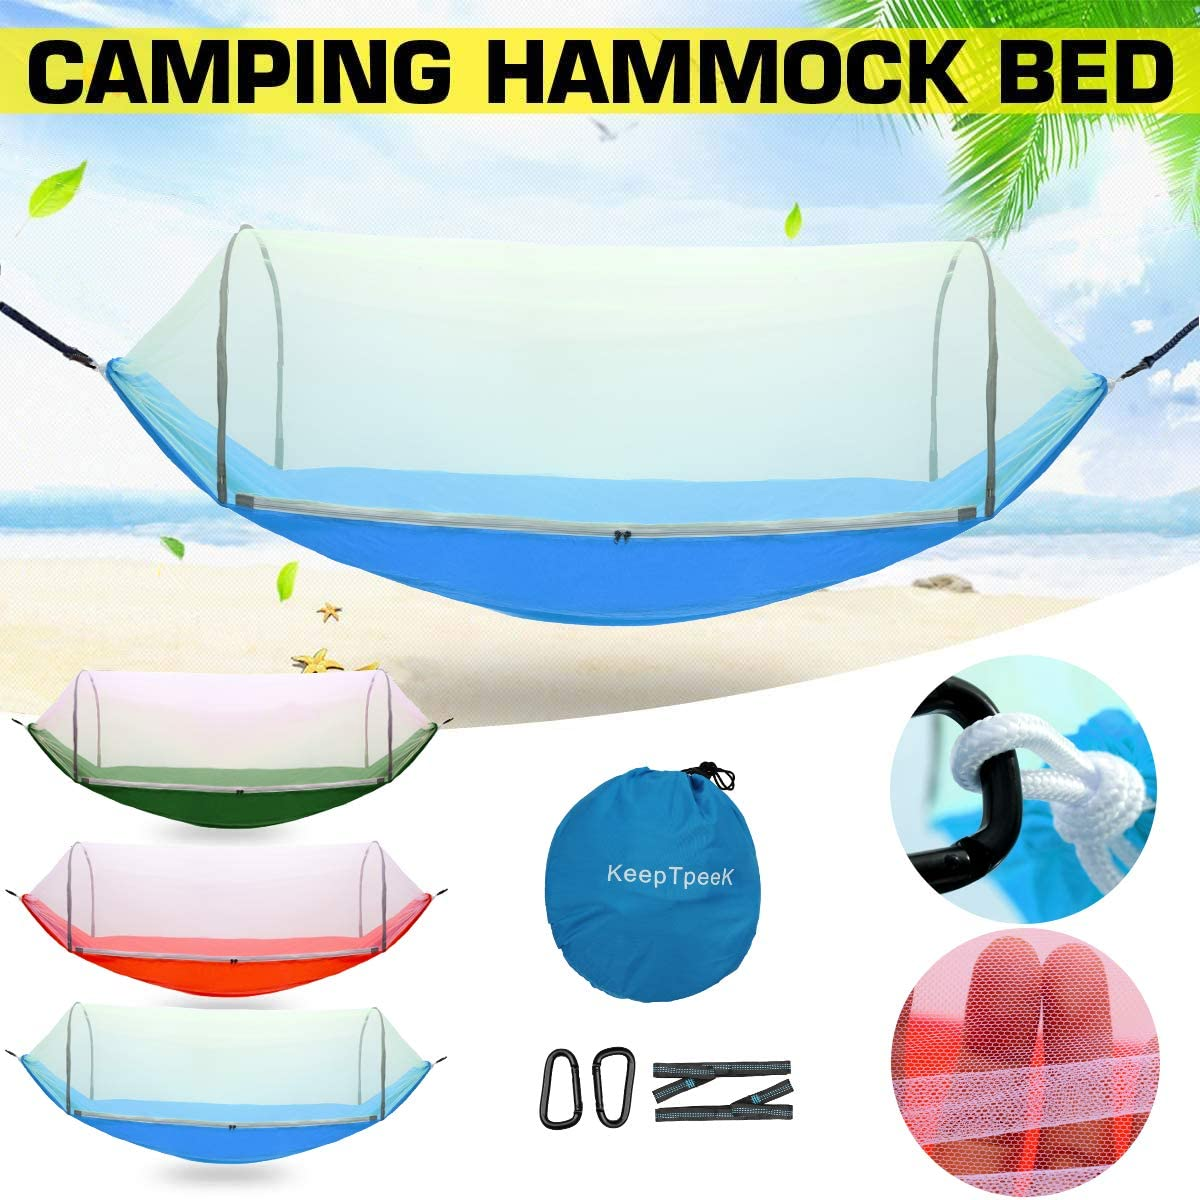 KeepTpeeK Camping Hammock with Mosquito Net Tree Straps and Carabiners Lightweight Portable Soft Swing Sleeping Hammock Bed for Backpacking Hiking Garden Travel Yard Outdoor Activities